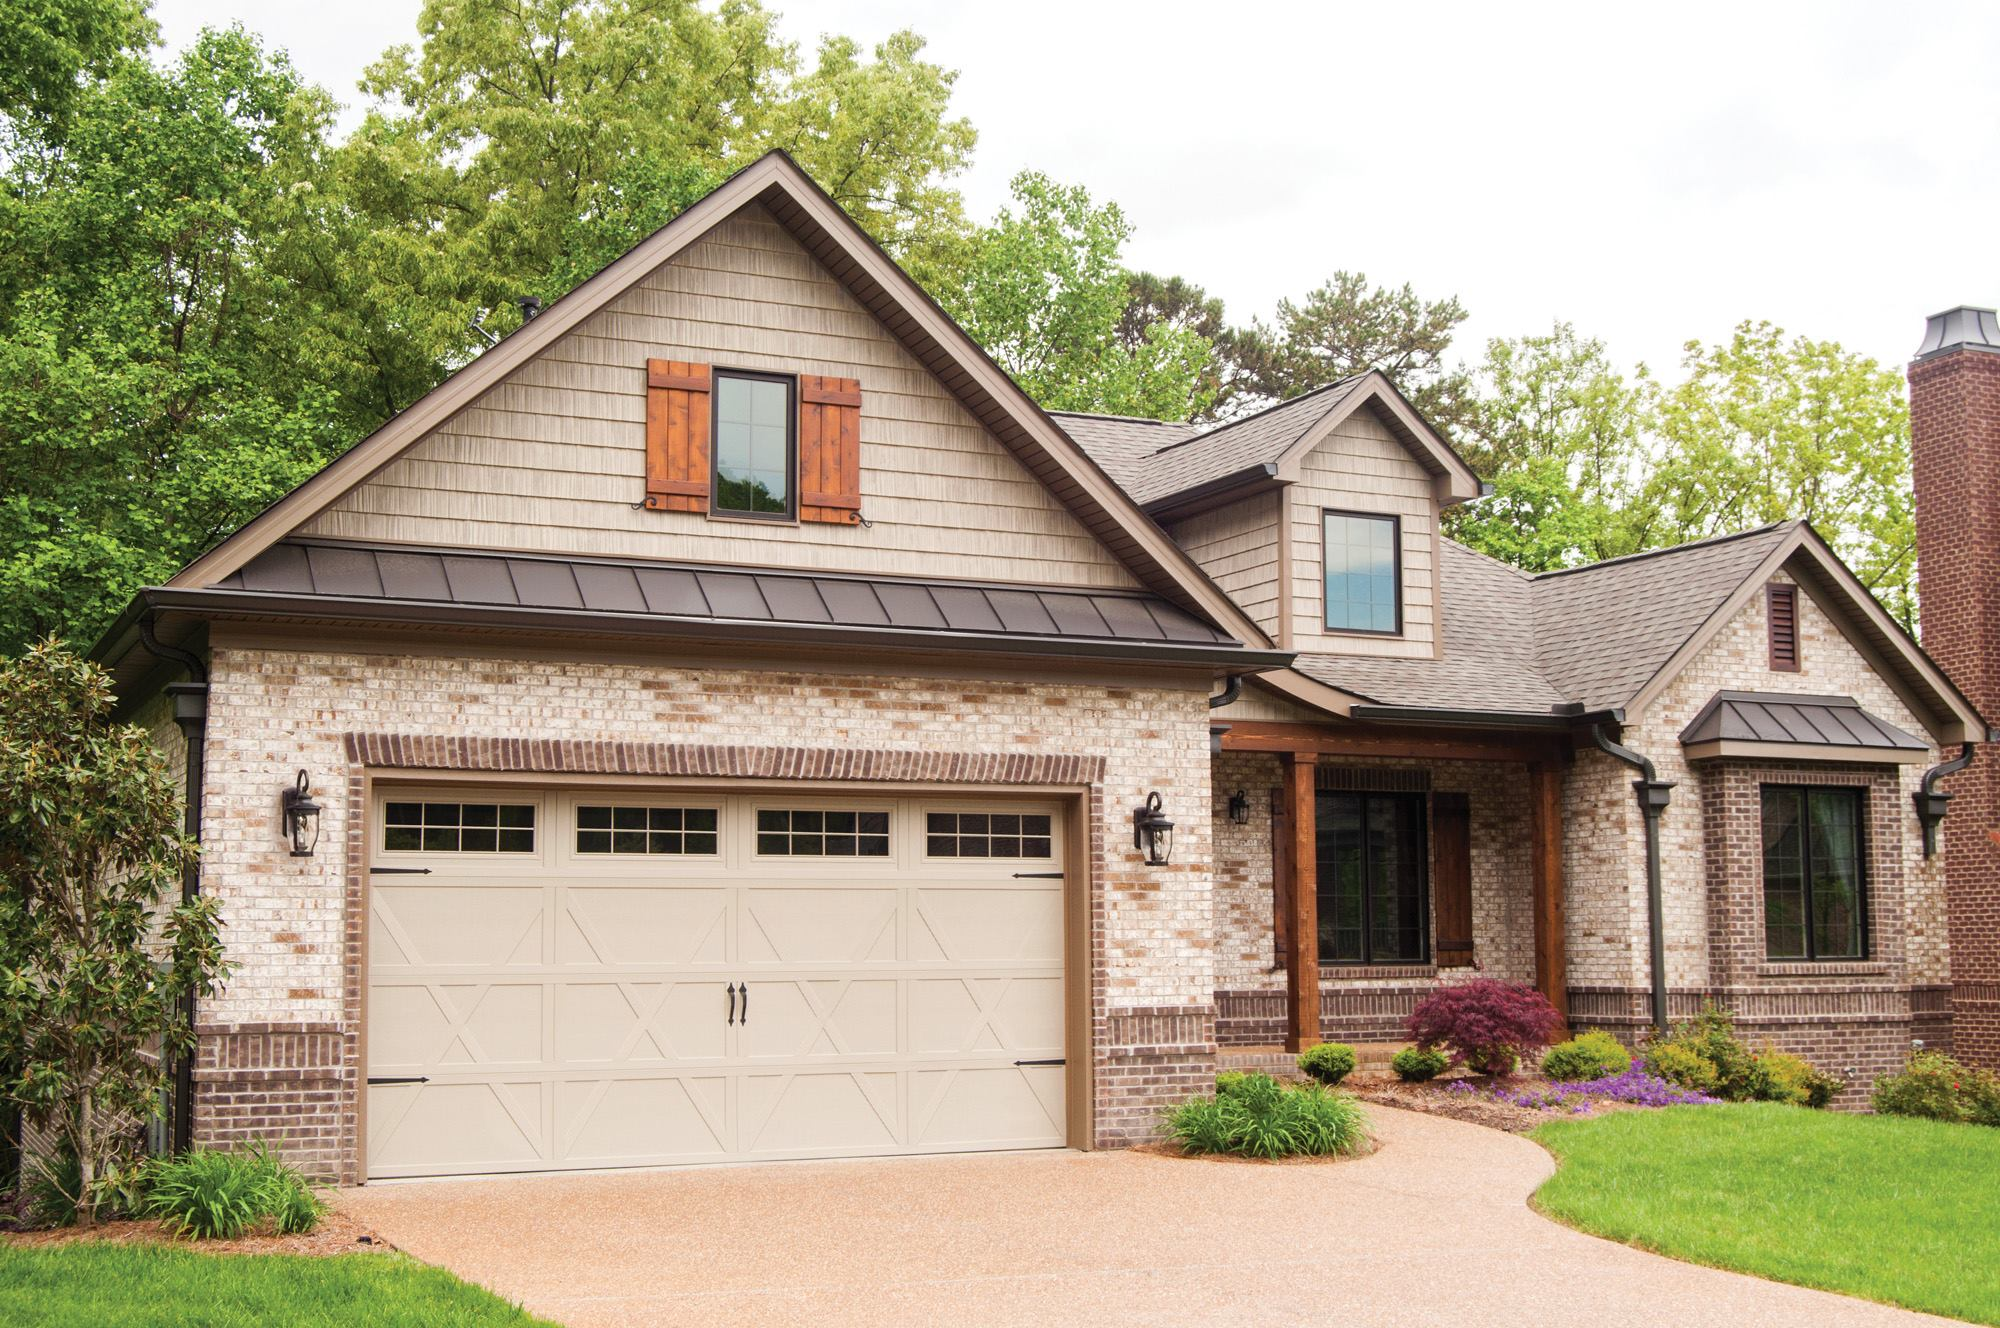 Carriage House Style Garage Door Brings Old-World Charm ...